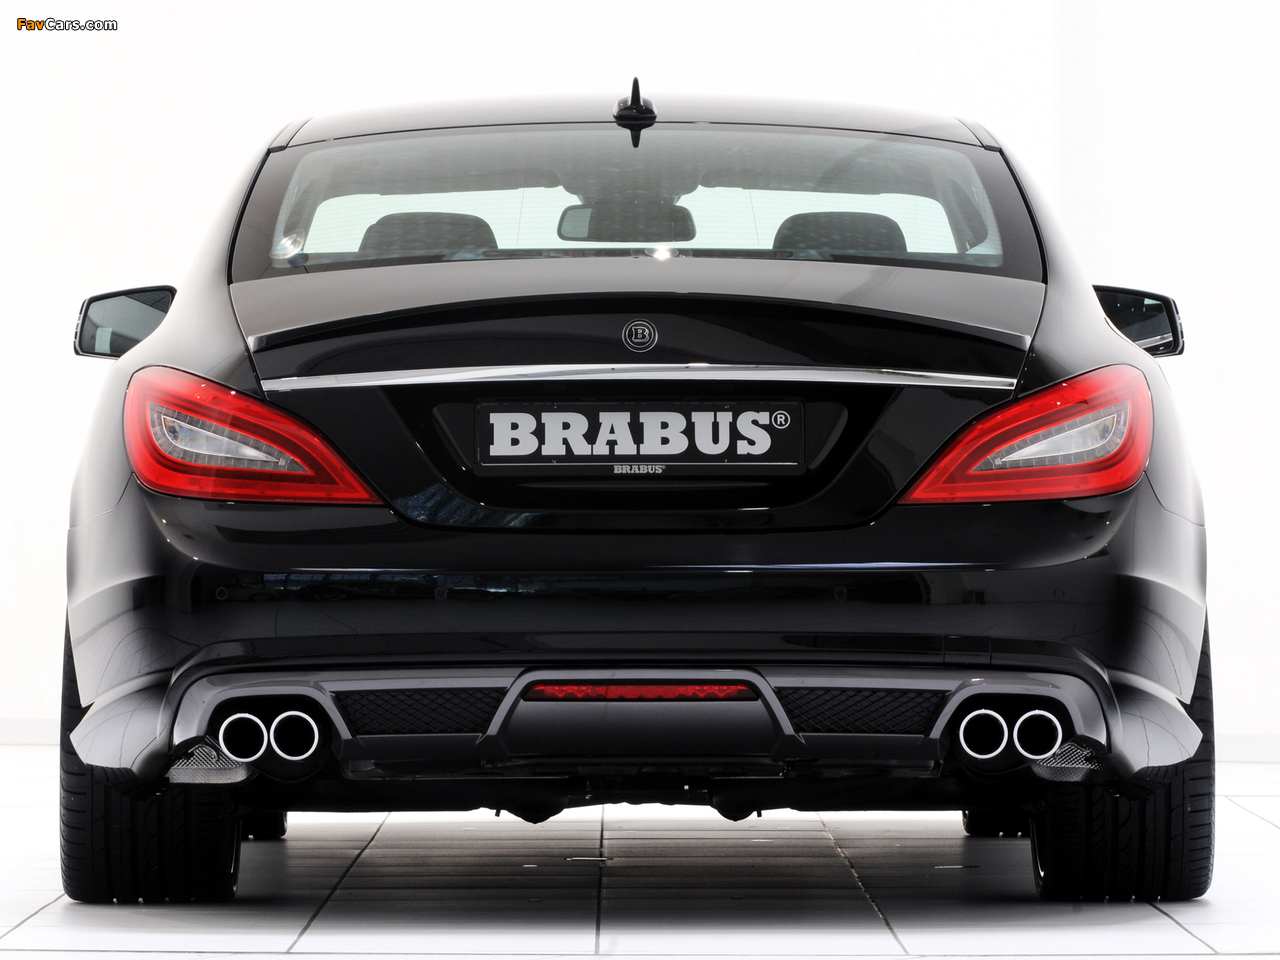 Brabus Mercedes-Benz CLS AMG Sports Package (C218) 2011 wallpapers (1280 x 960)